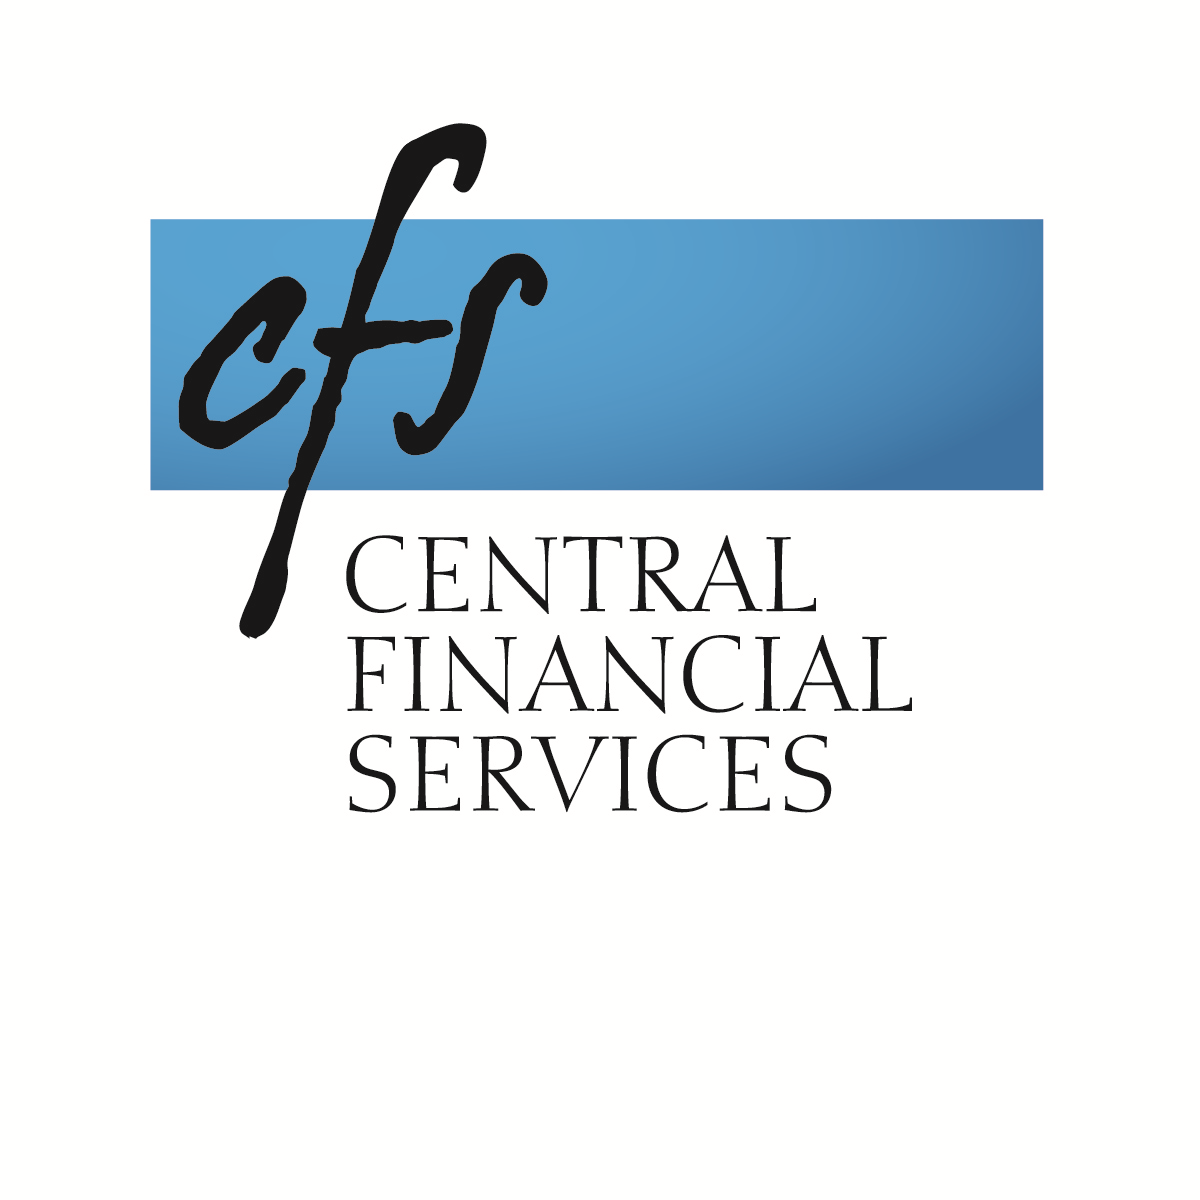 Central Financial Services Welcomes Andy Welch Business